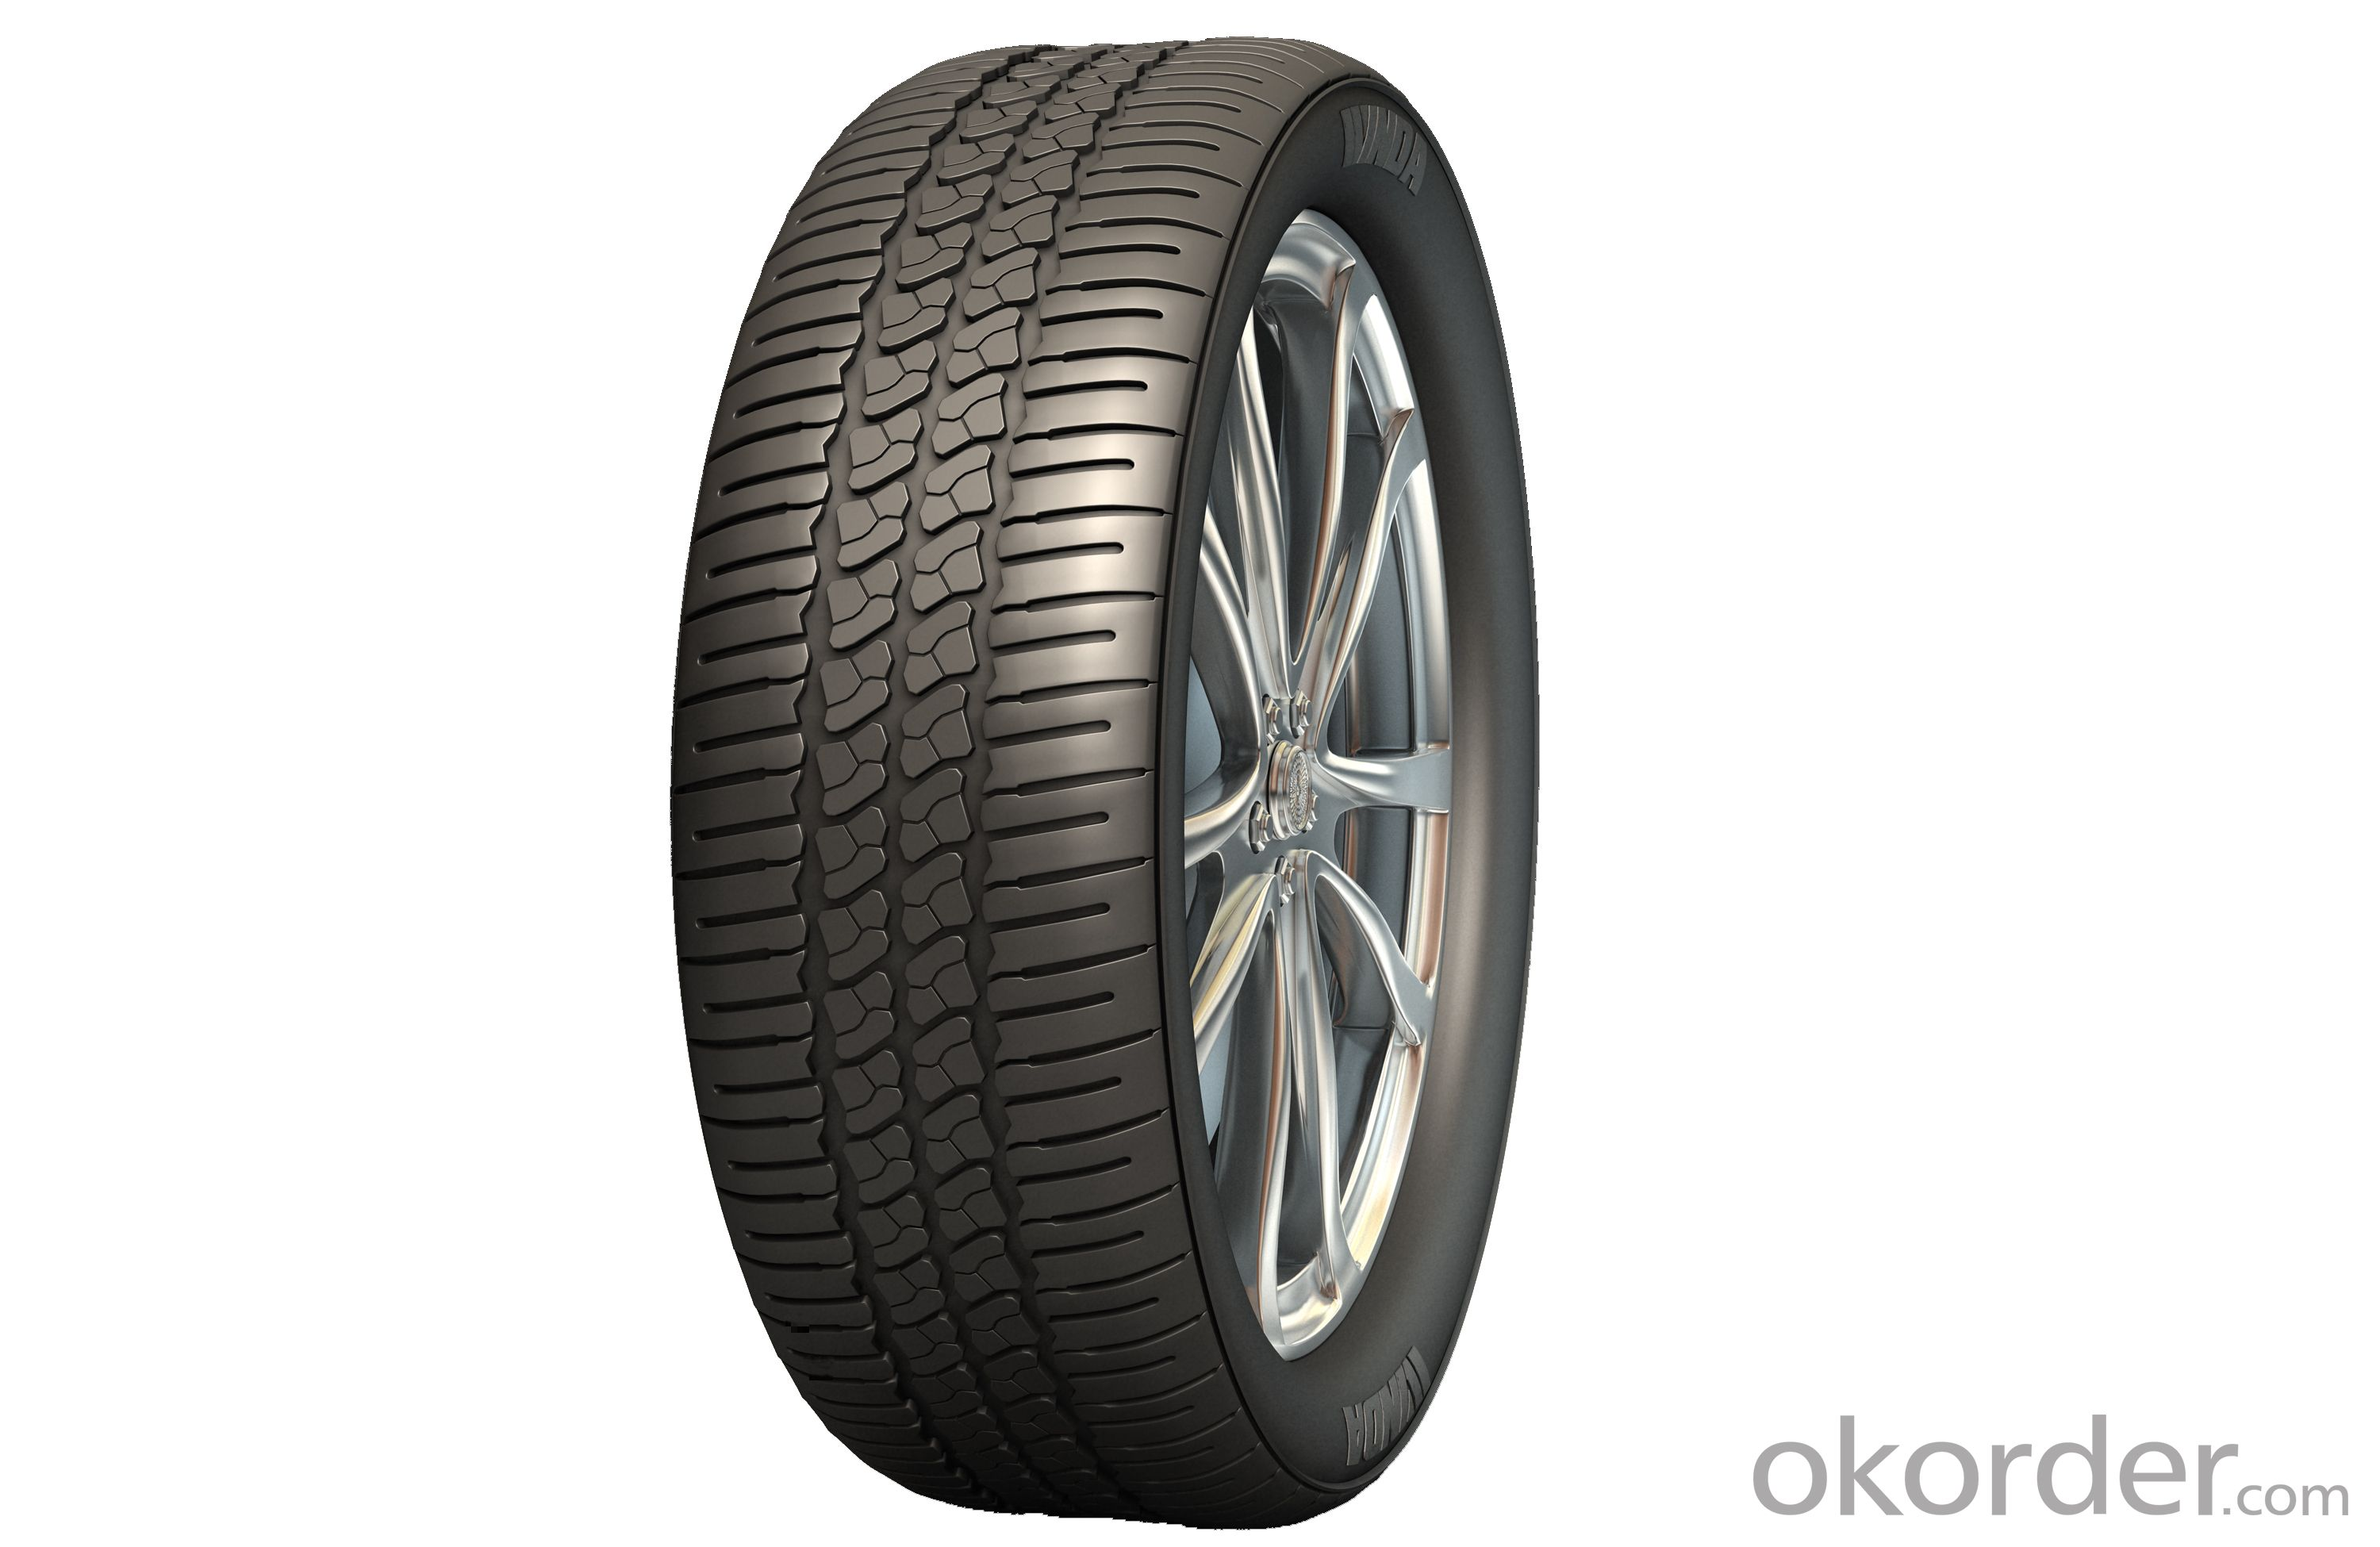 Passager Car Radial Tyre WL15 with Three lines